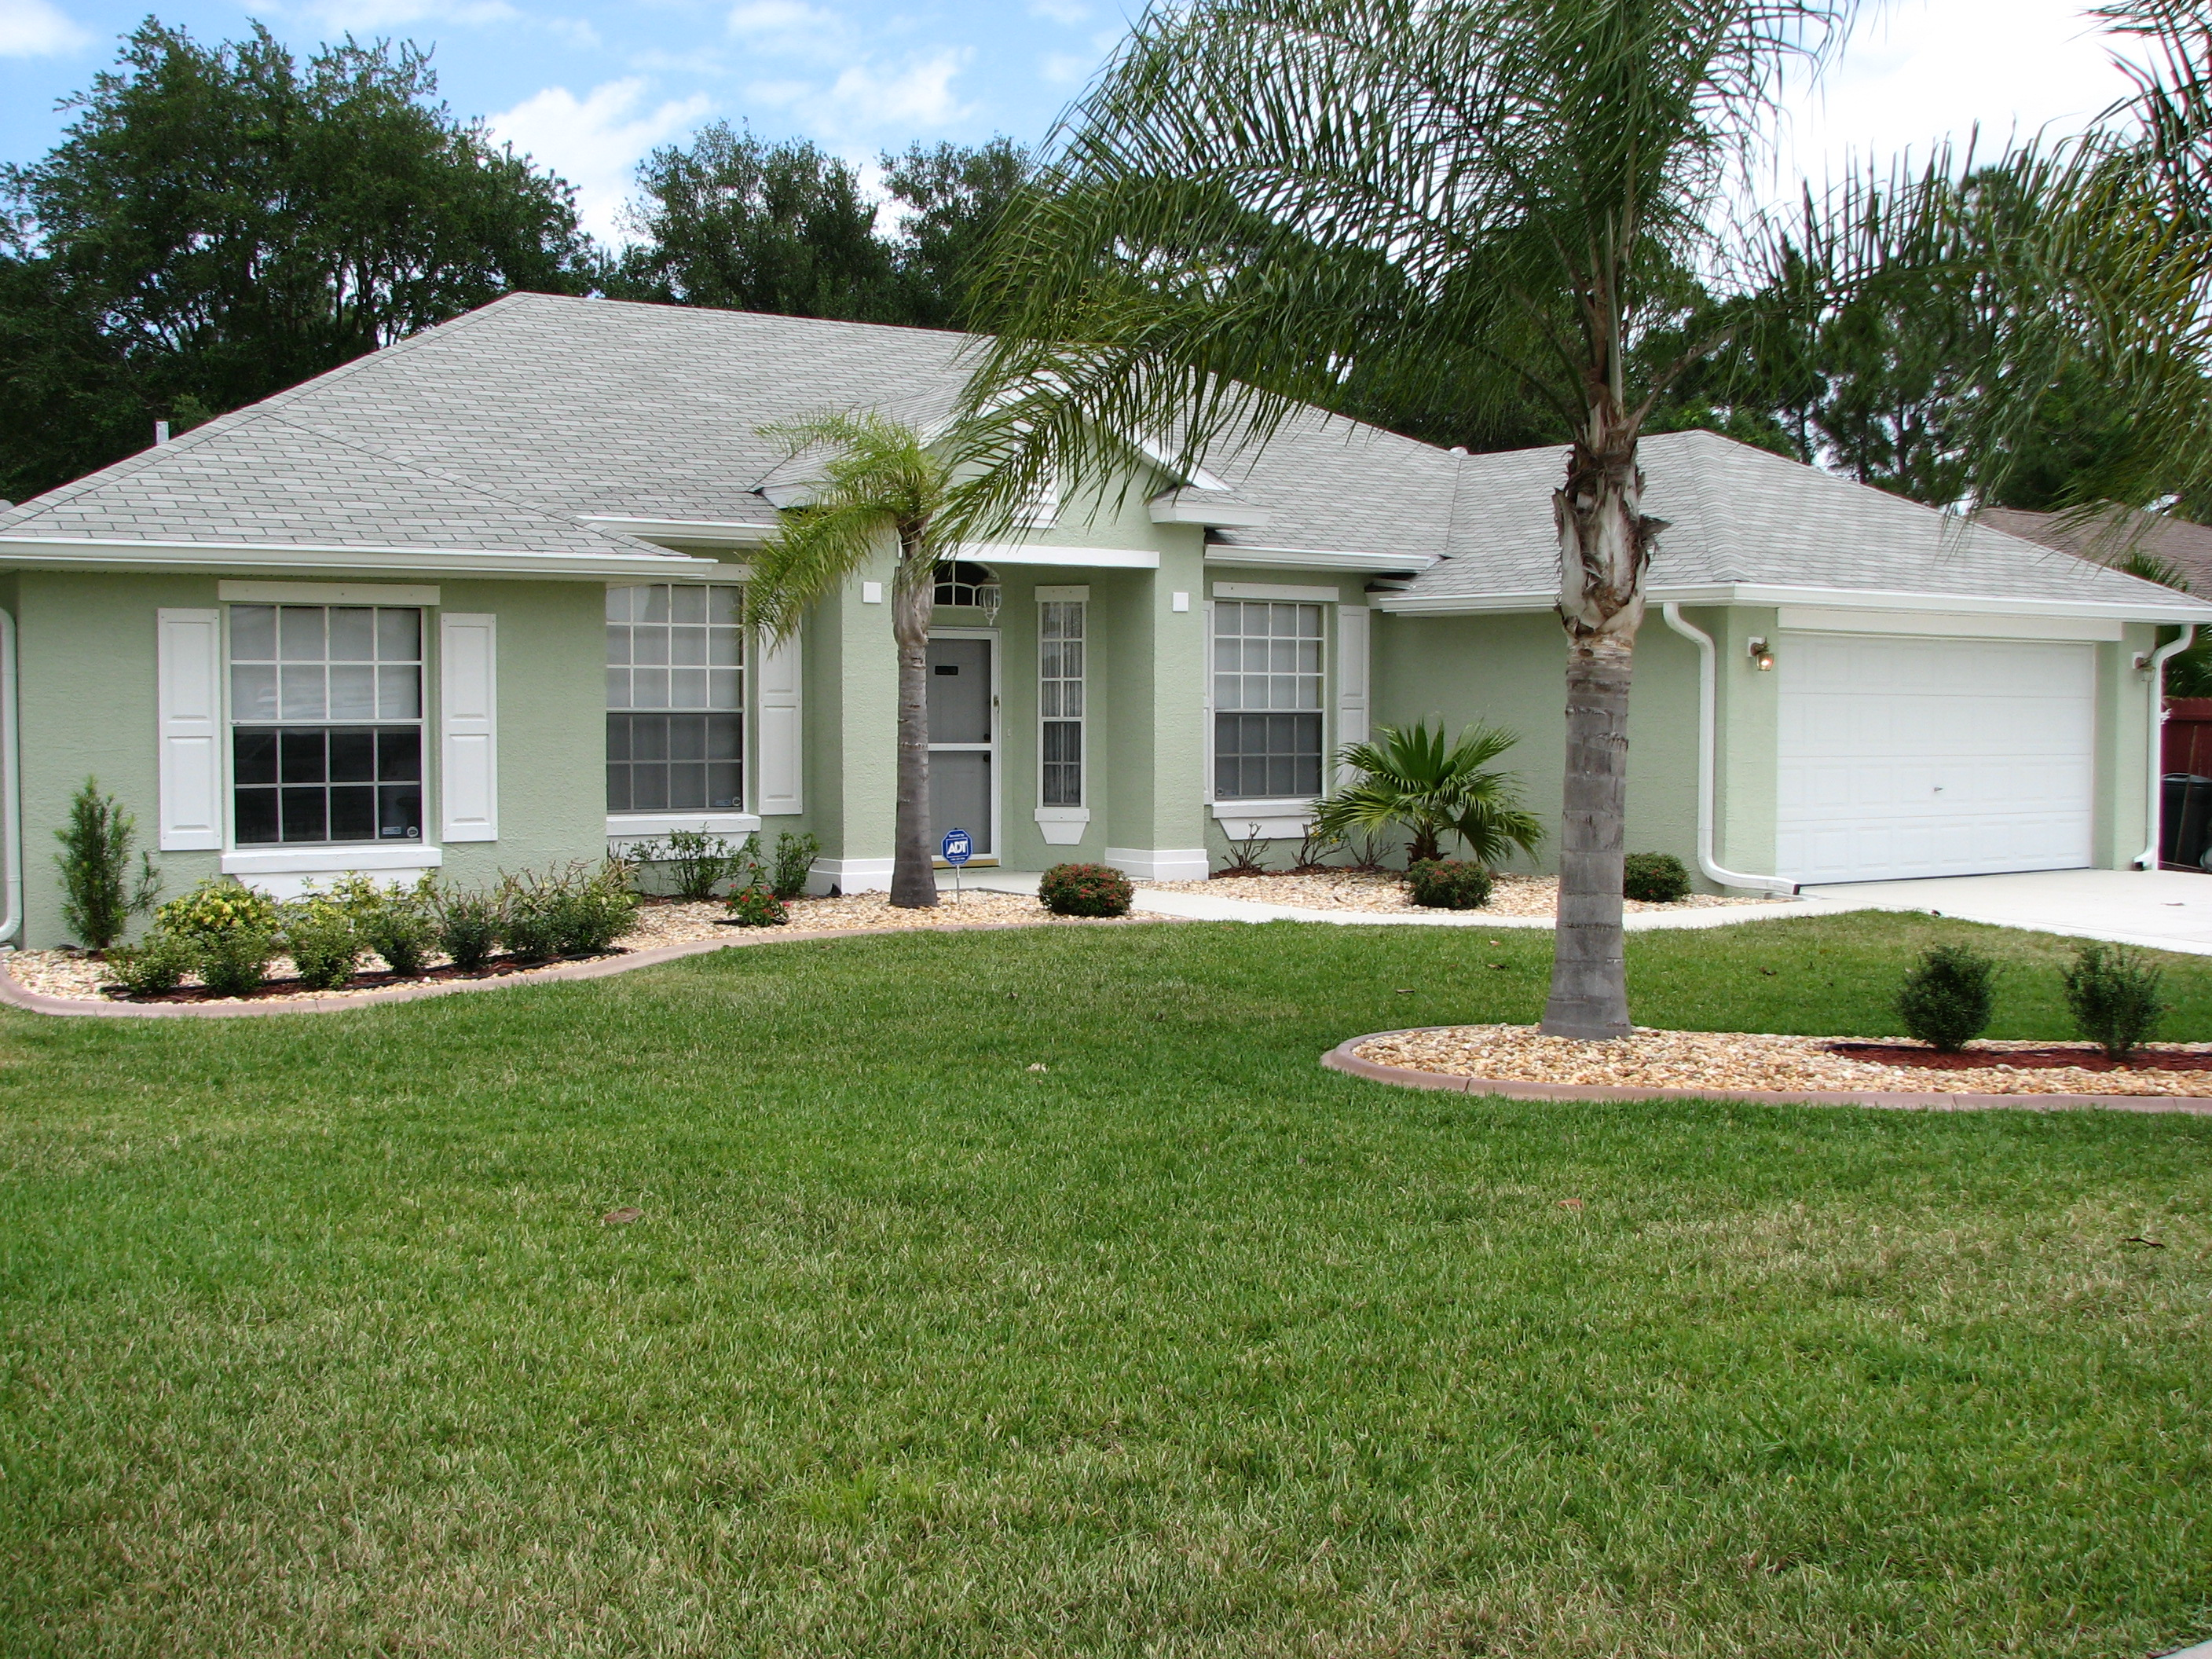 Cocoa fl exterior house painting project by peck painting for Florida house paint colors